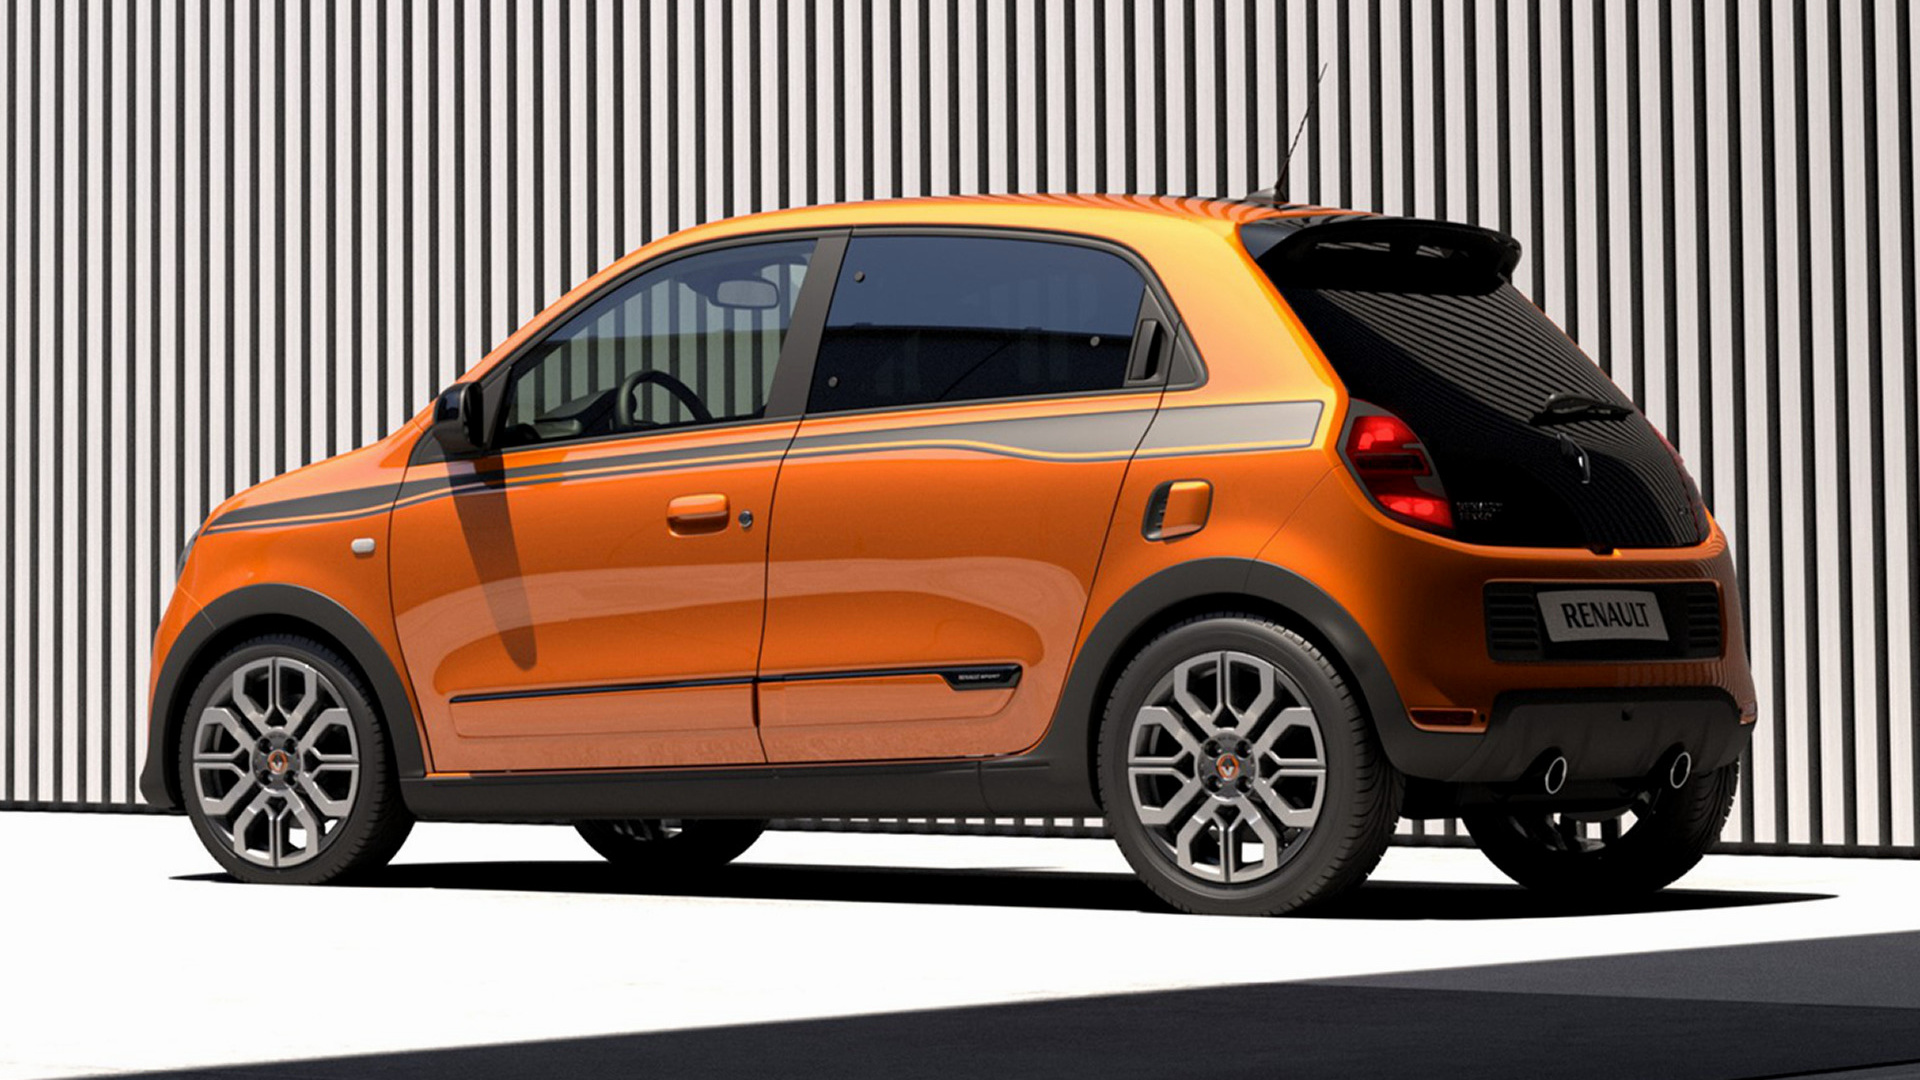 renault twingo gt 2016 wallpapers and hd images car pixel. Black Bedroom Furniture Sets. Home Design Ideas